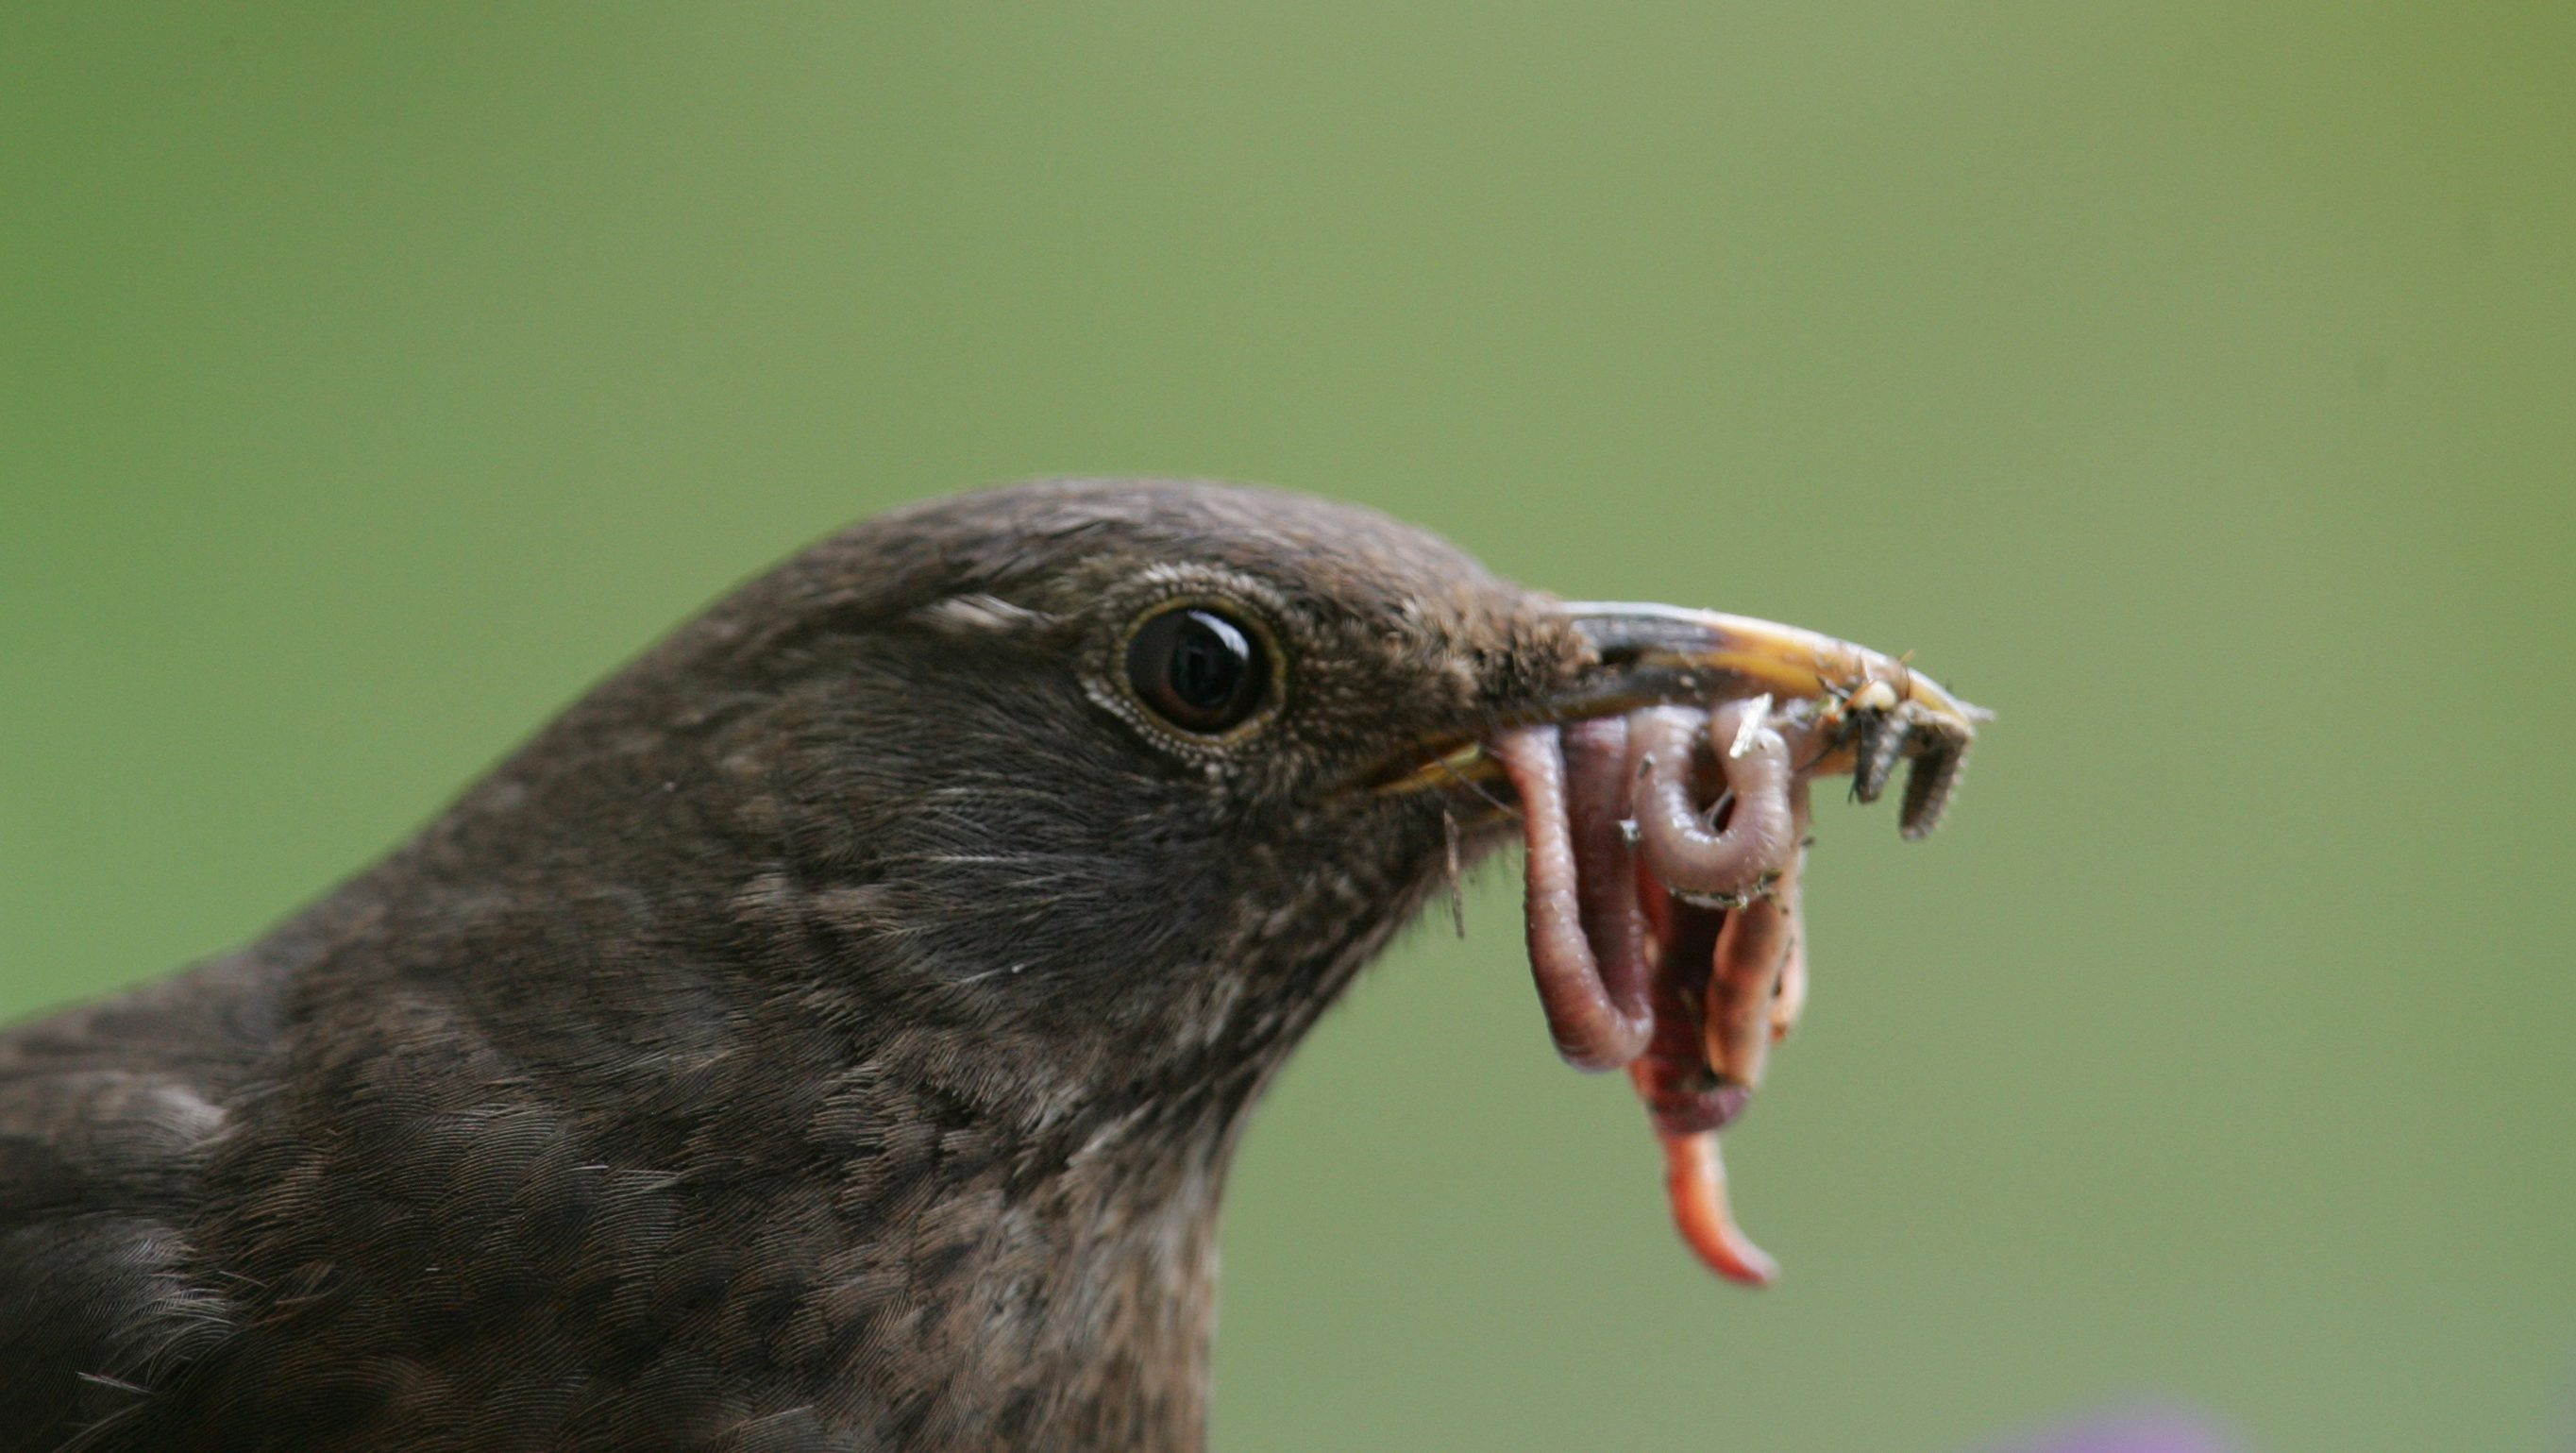 A female Blackbird holding worms in her beak, arrives to feed her recently hatched chicks at her nest in the Berlin district of Prenzlauerberg.  A female Blackbird holding worms in her beak, arrives to feed her recently hatched chicks at her nest in a window box on the balcony of a city apartment, in the Berlin district of Prenzlauerberg April 30, 2005. The Blackbird (Turdus merula) is a European member of the thrush family and is commonly found in woods and gardens.